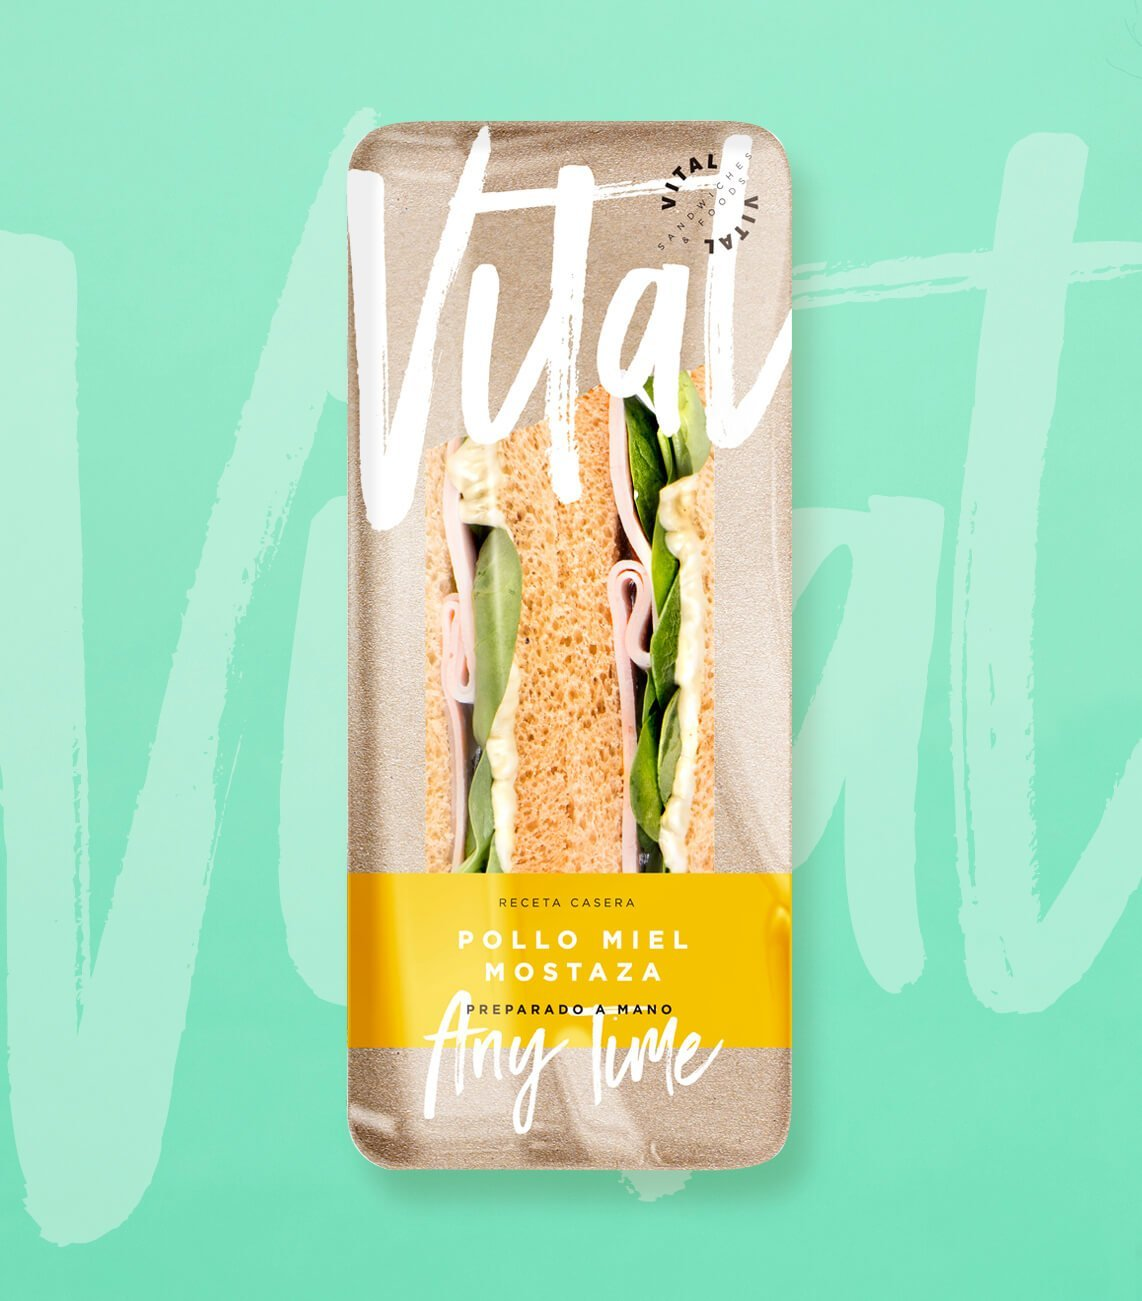 diseño-packaging-sandwich-vital-bacon-pollo-miel-mostaza-sandwiches-and-foods